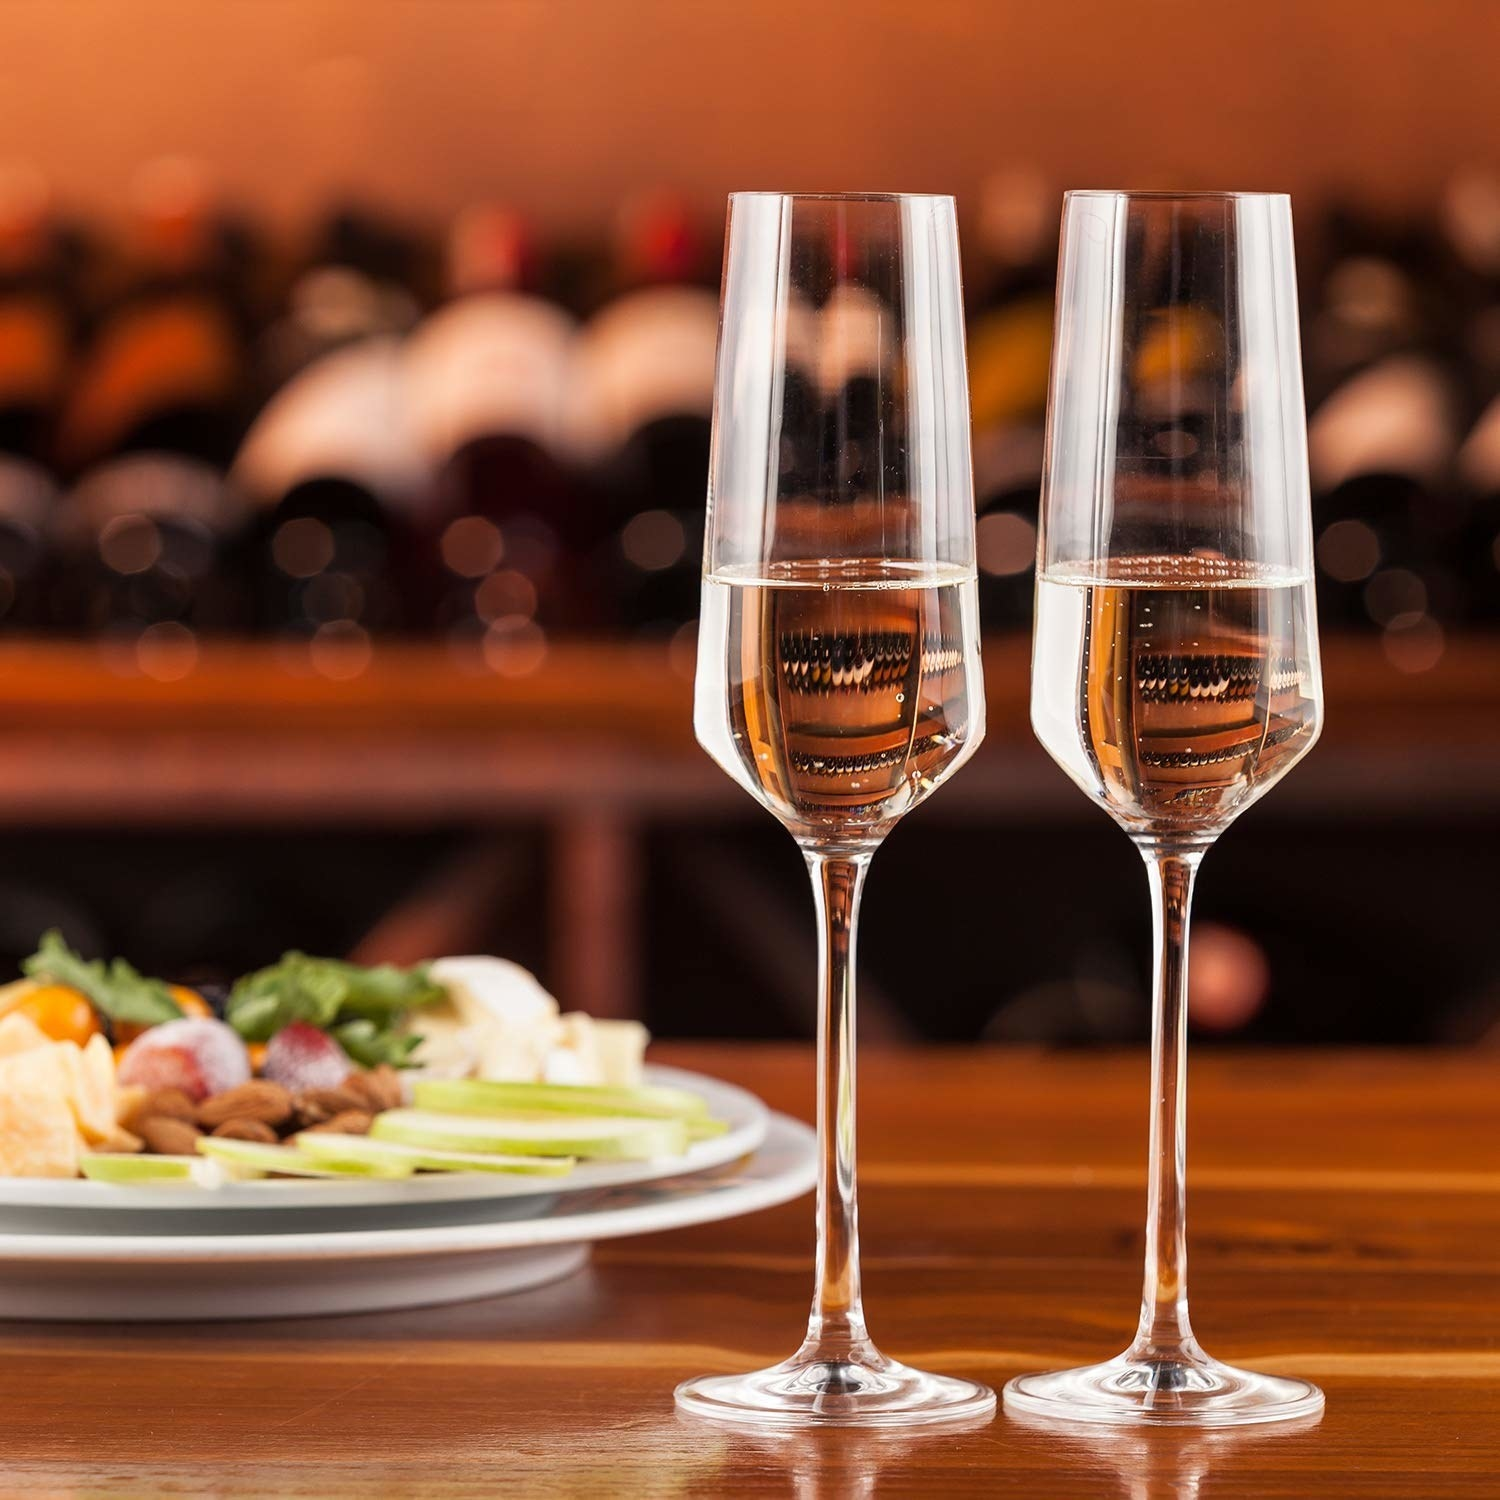 The champagne flutes filled with bubbly.